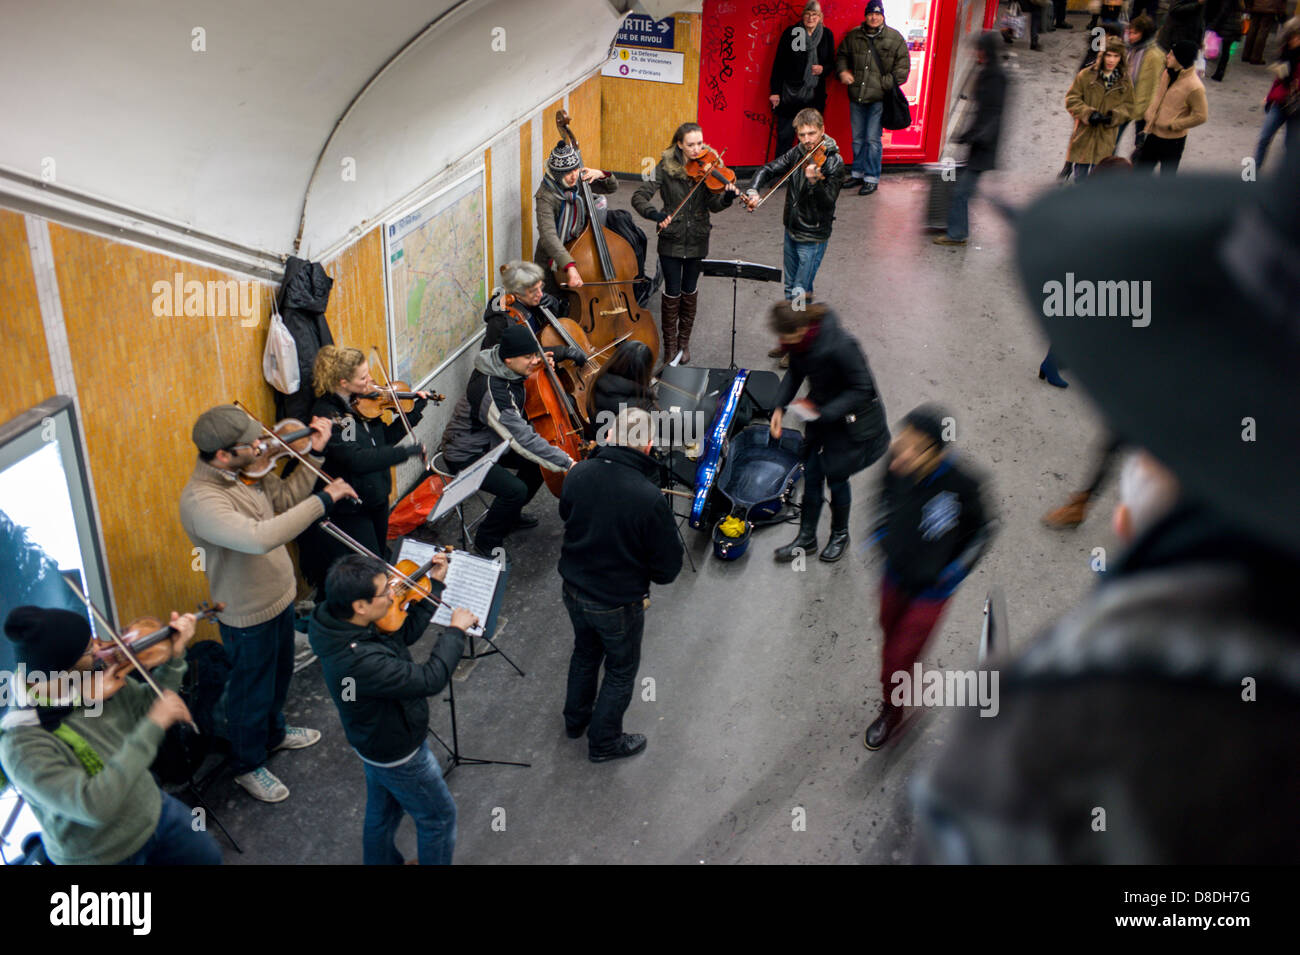 Orchestra playing in the Paris Metro. - Stock Image